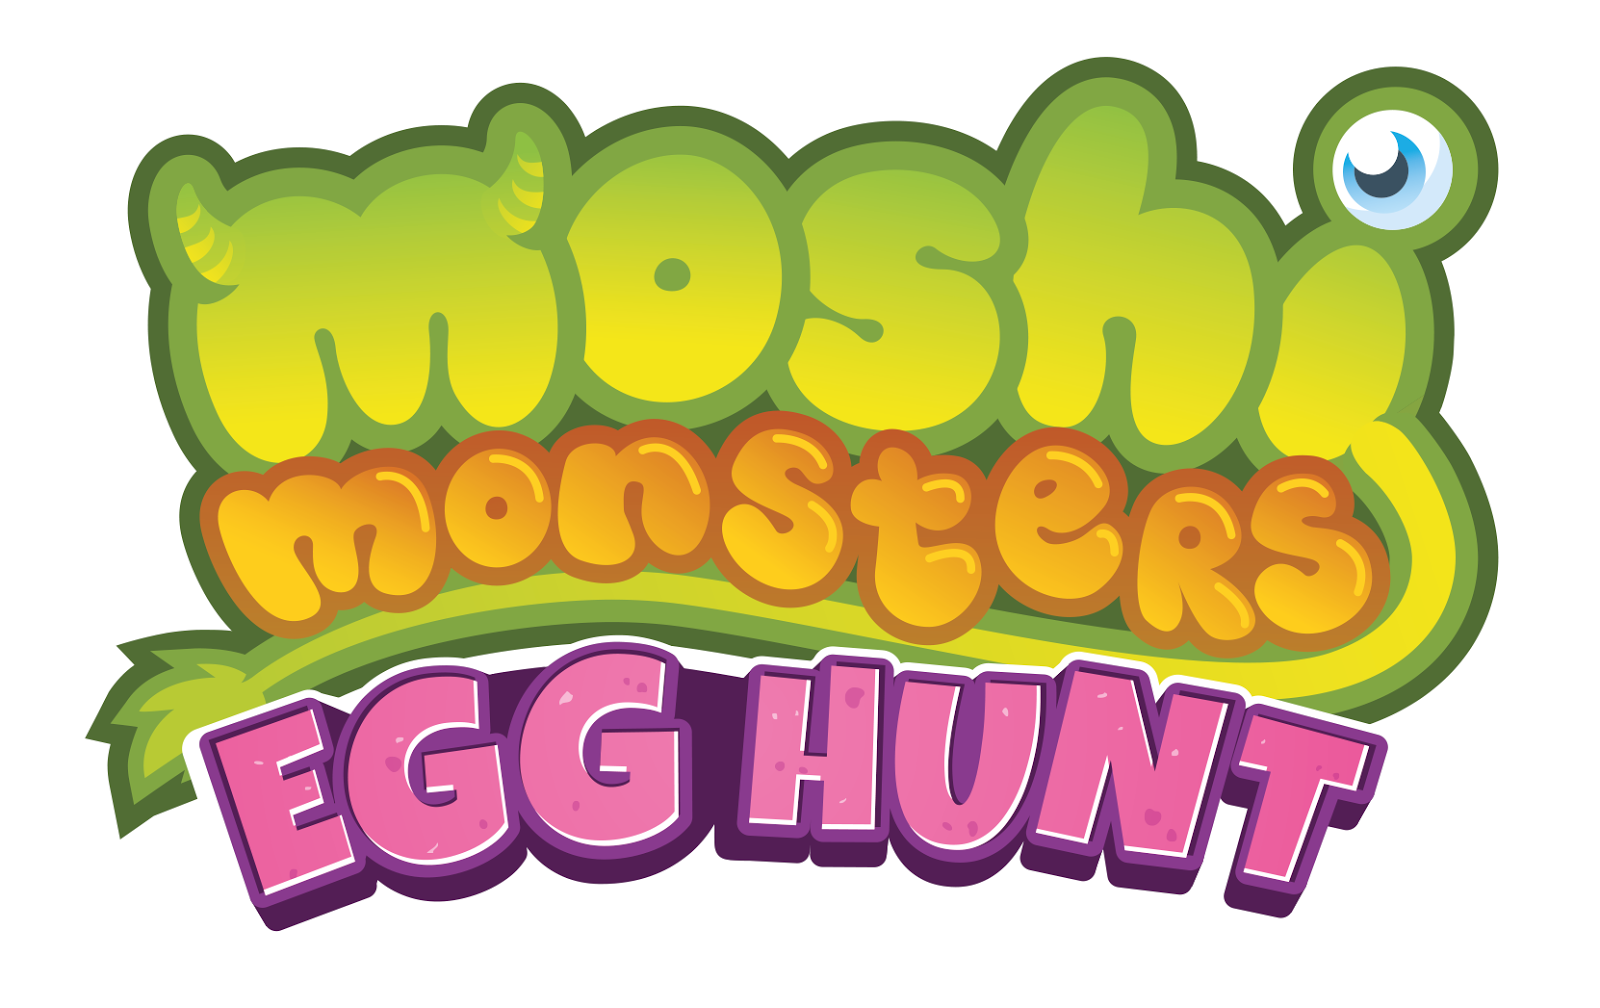 1600x1008 Madhouse Family Reviews Moshi Monsters Egg Hunt Mobile Game